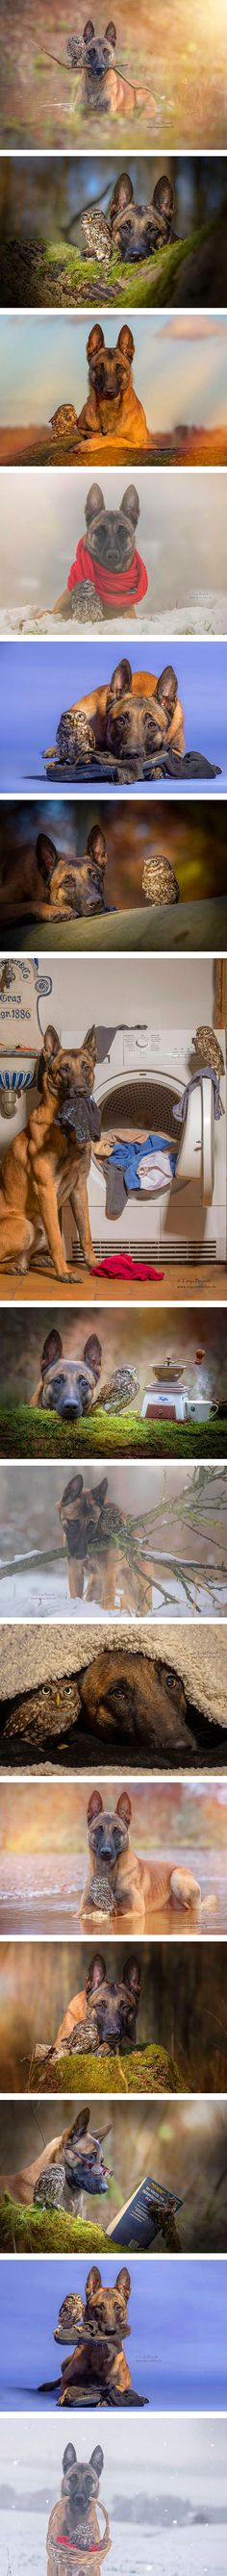 I wouldn't have believed that an owl and a dog could become best friends until I saw these surprising and adorable photos by Tanja Brandt, a professional animal photographer and collage artist in Germany. Ingo the shepherd dog and Poldi the little owl seem more than happy to cozy up to each other for photoshoots bathed in golden evening light.